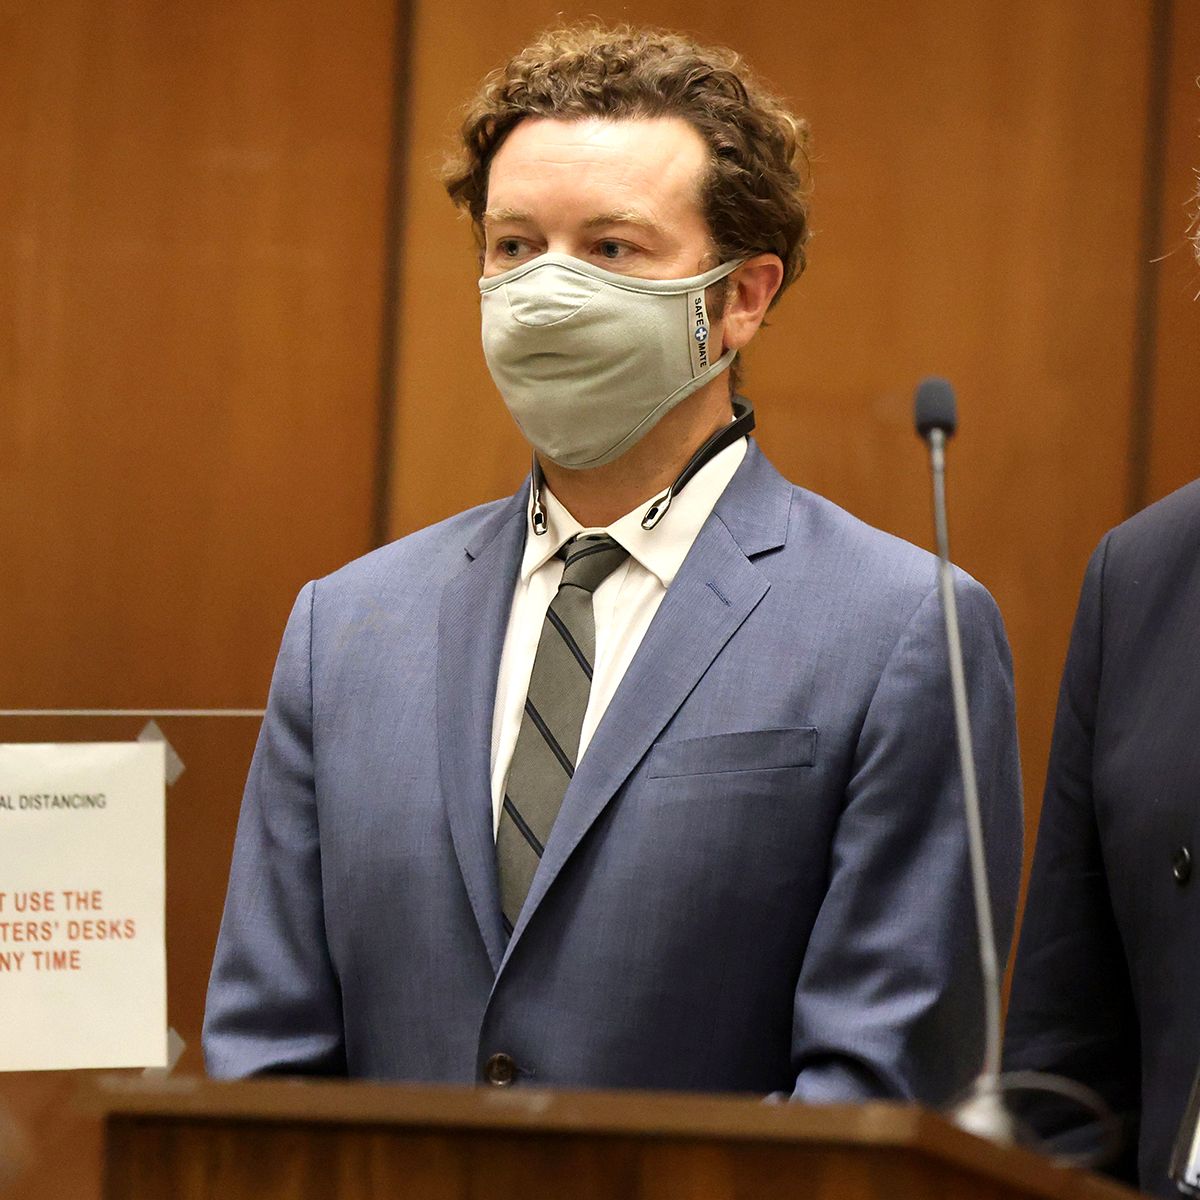 Danny Masterson Appears in Court for Arraignment on Rape Charges